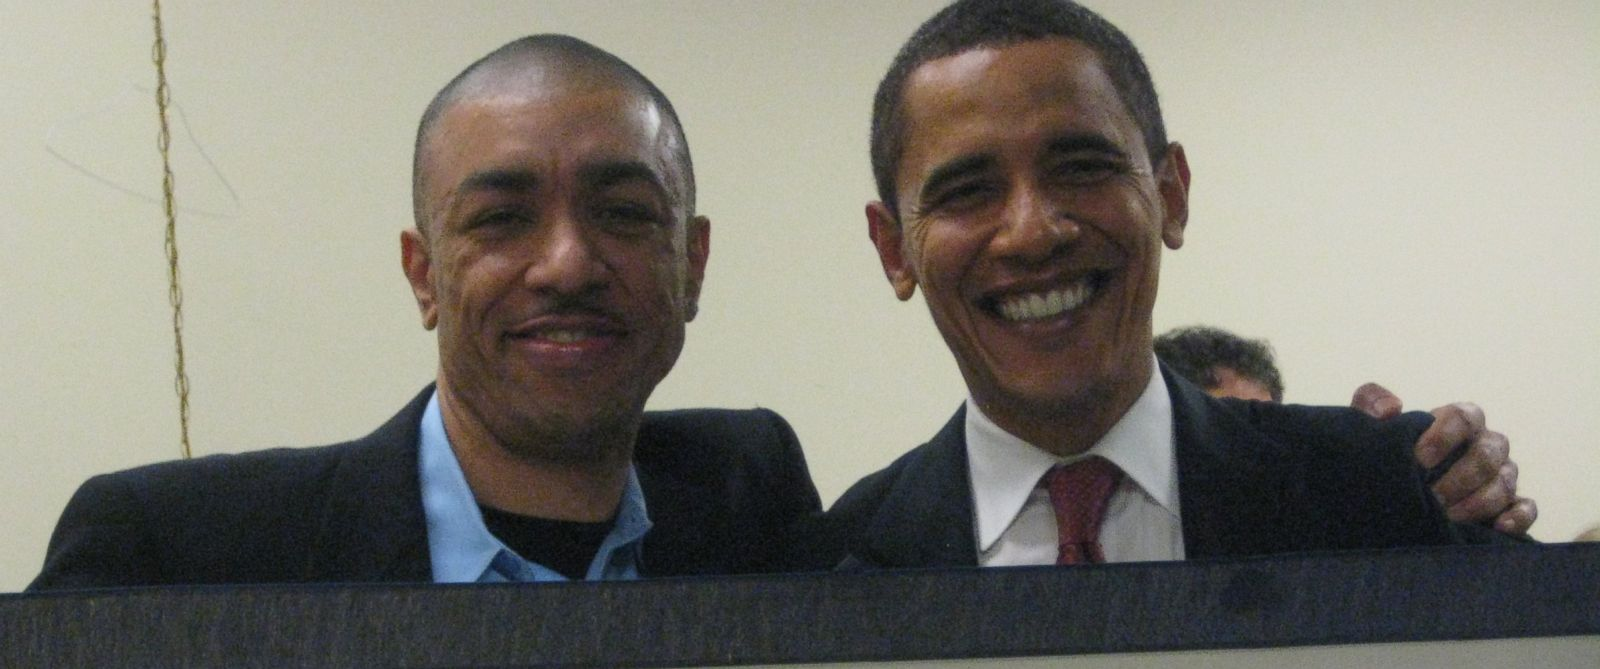 PHOTO: Barack Obama (right) poses with his half-brother Mark Obama-Ndesandjo (left).